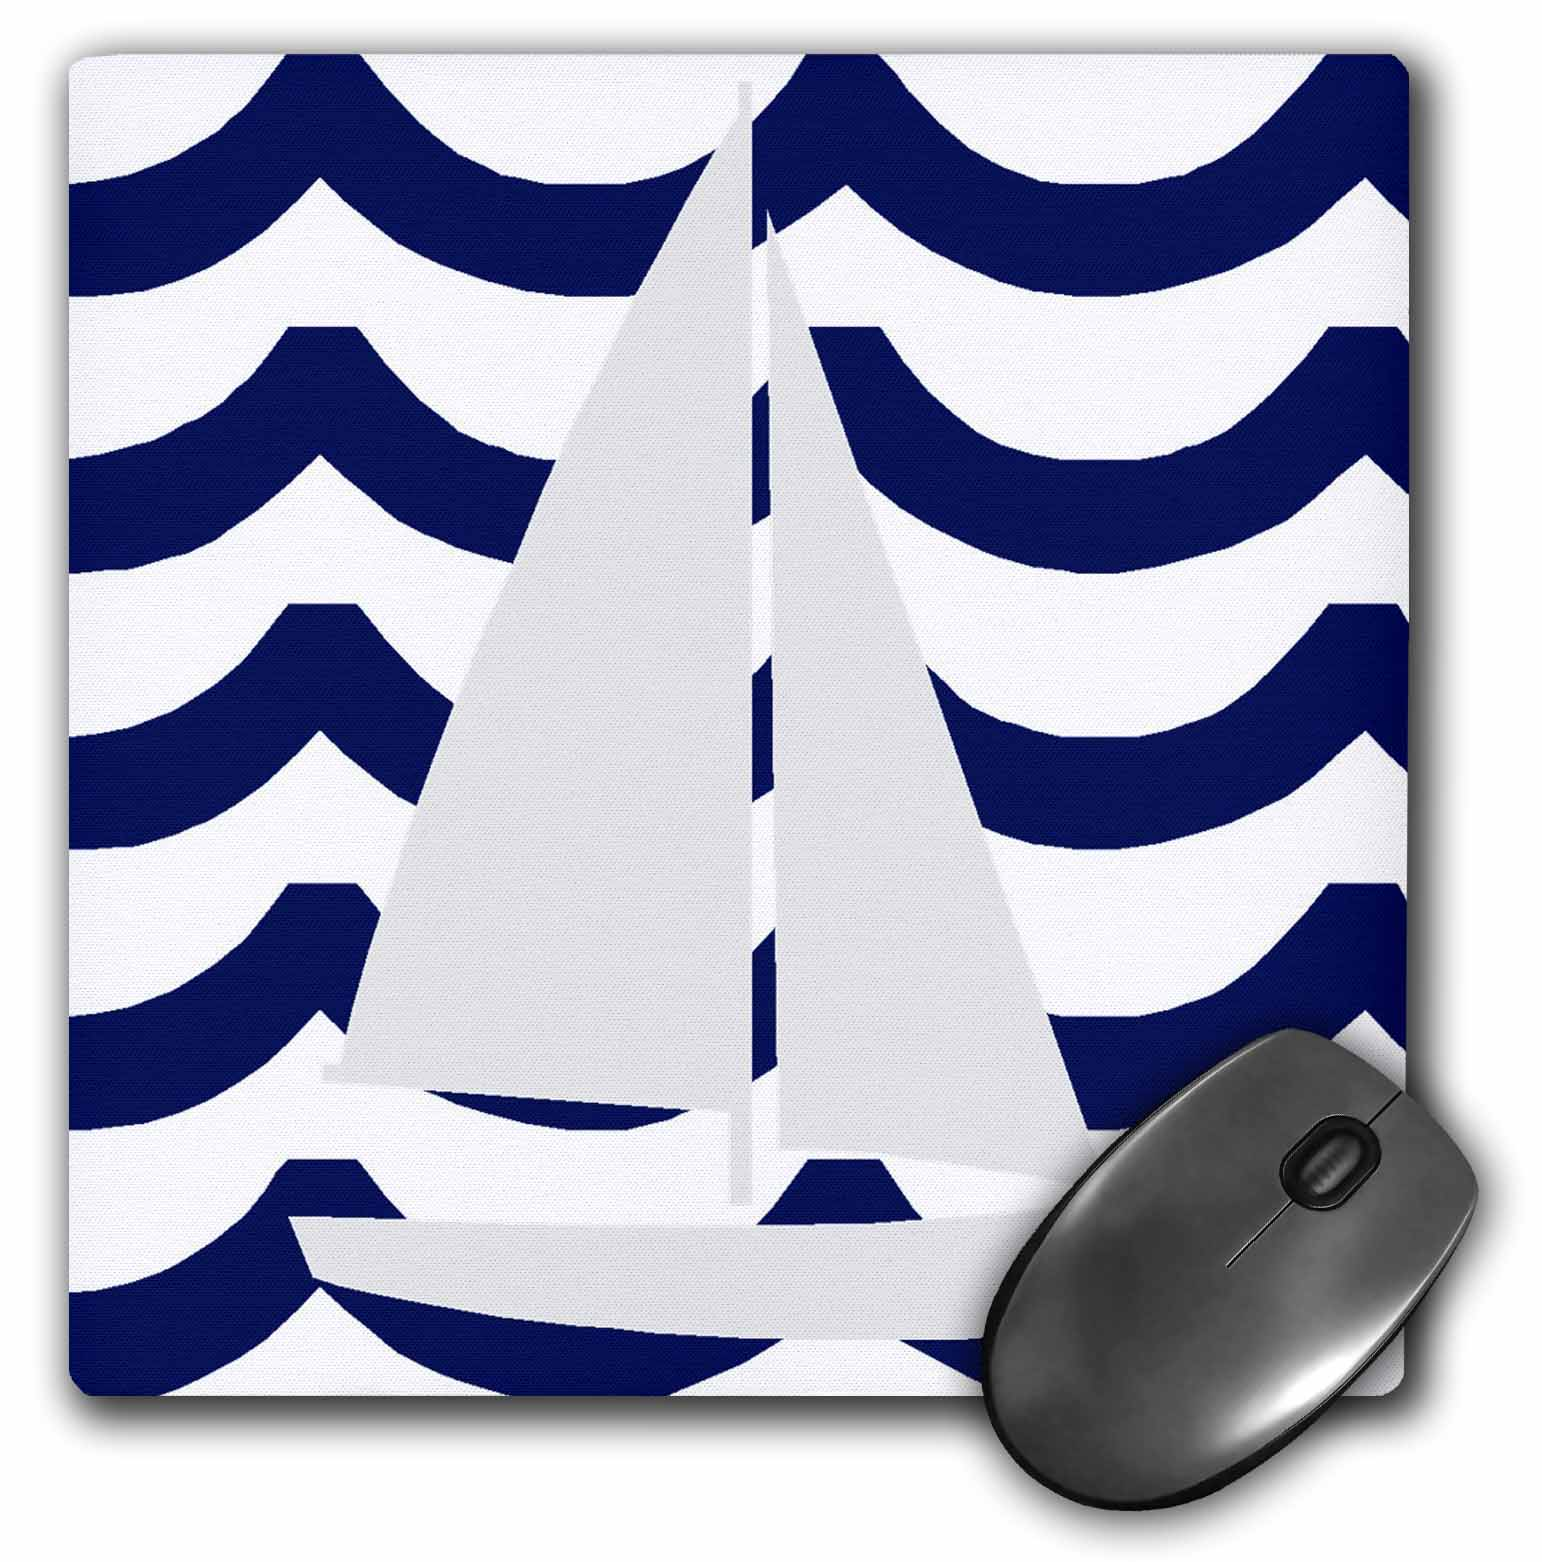 3dRose White Toy Sailboat On Blue Waves, Mouse Pad, 8 by 8 inches by 3dRose